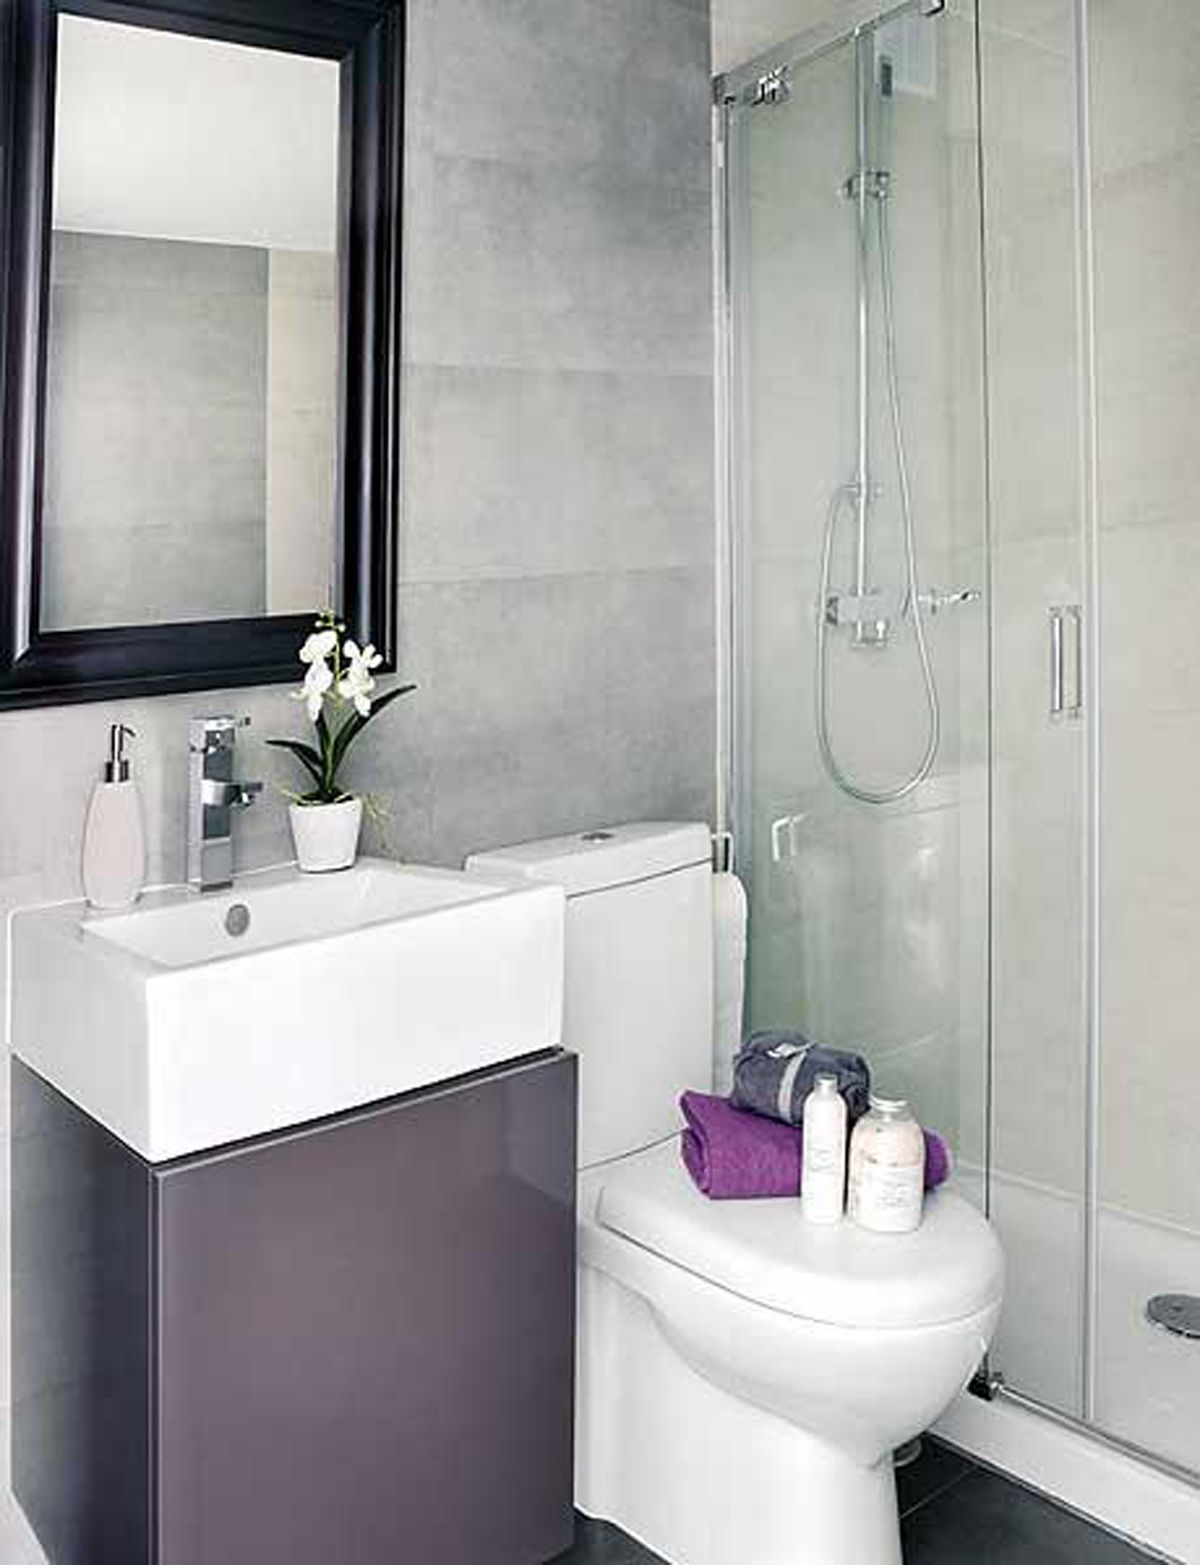 Apartment bathroom ideas modern - Apartment Bathroom Design